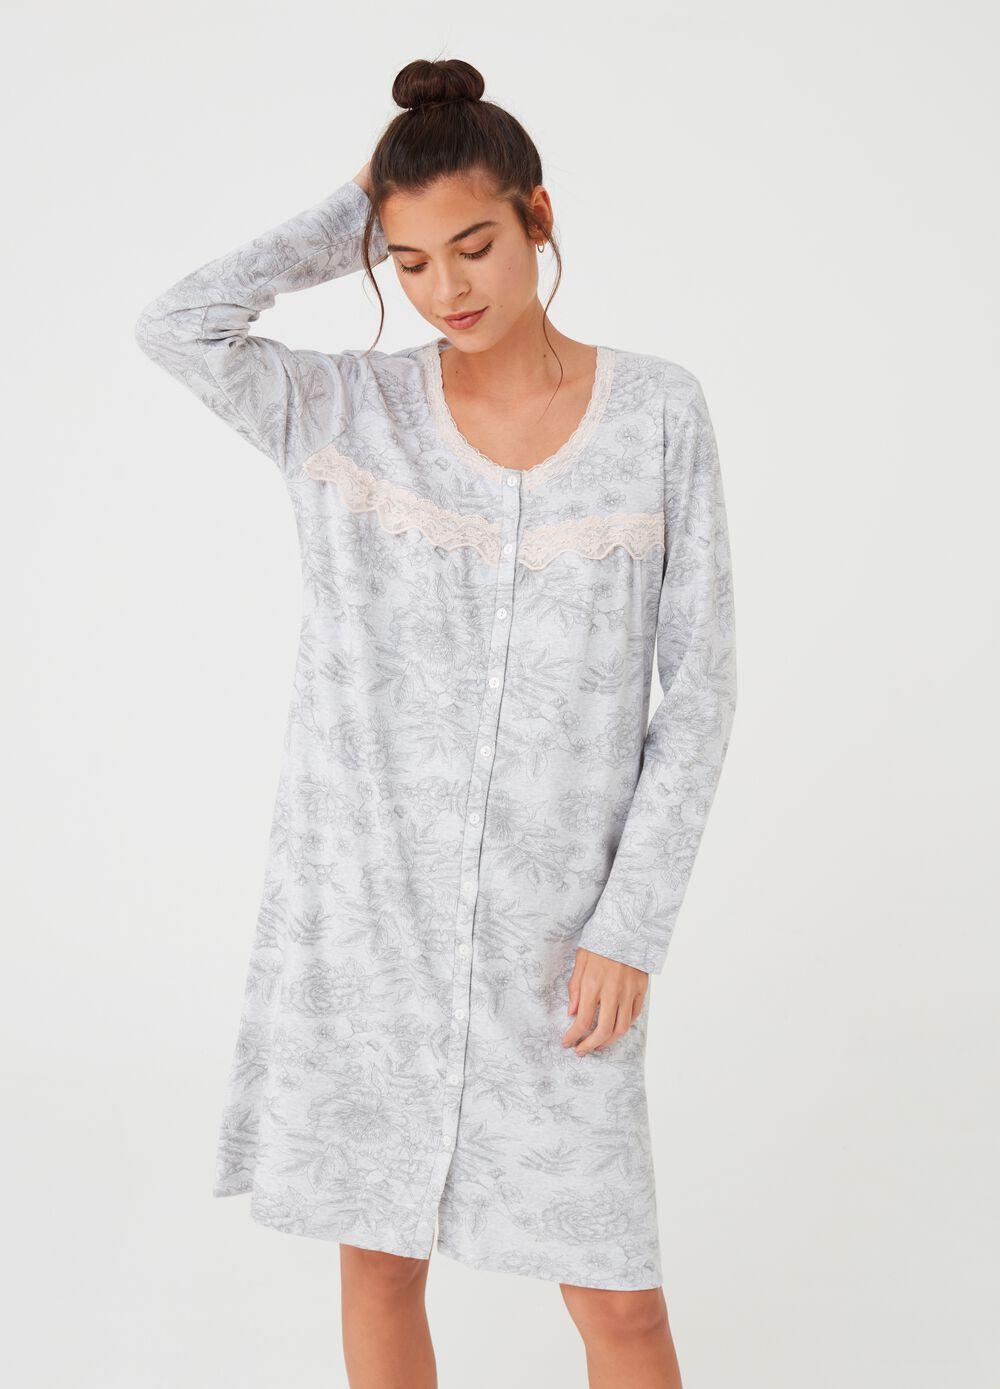 Nightshirt with patterned lace